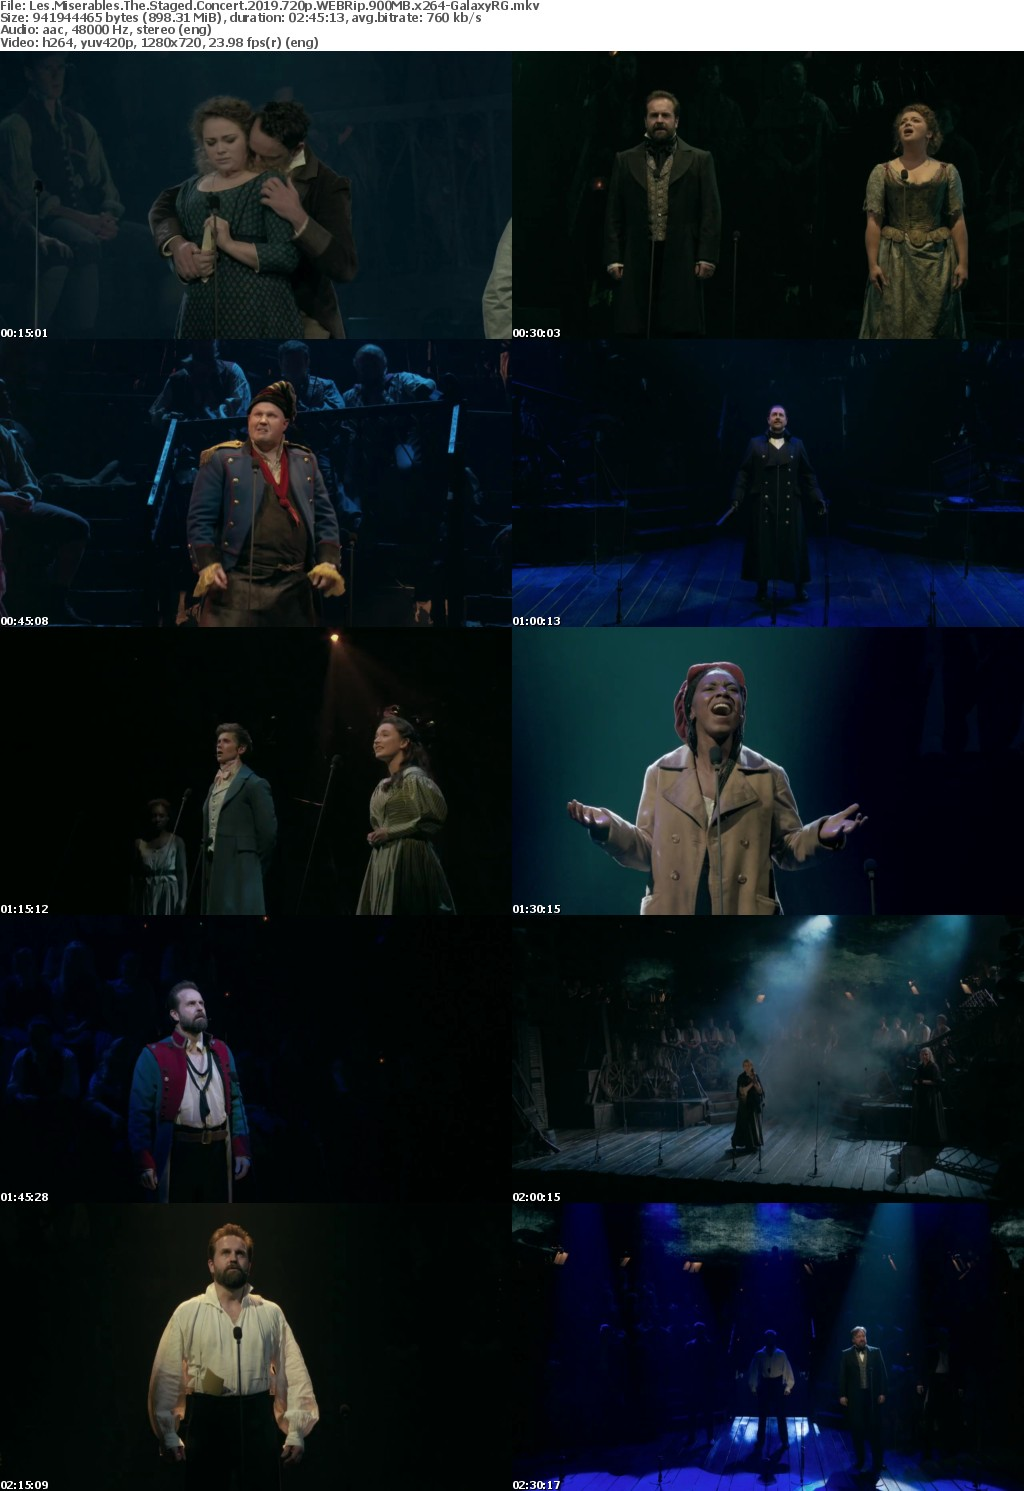 Les Miserables The Staged Concert 2019 720p WEBRip 900MB x264-GalaxyRG